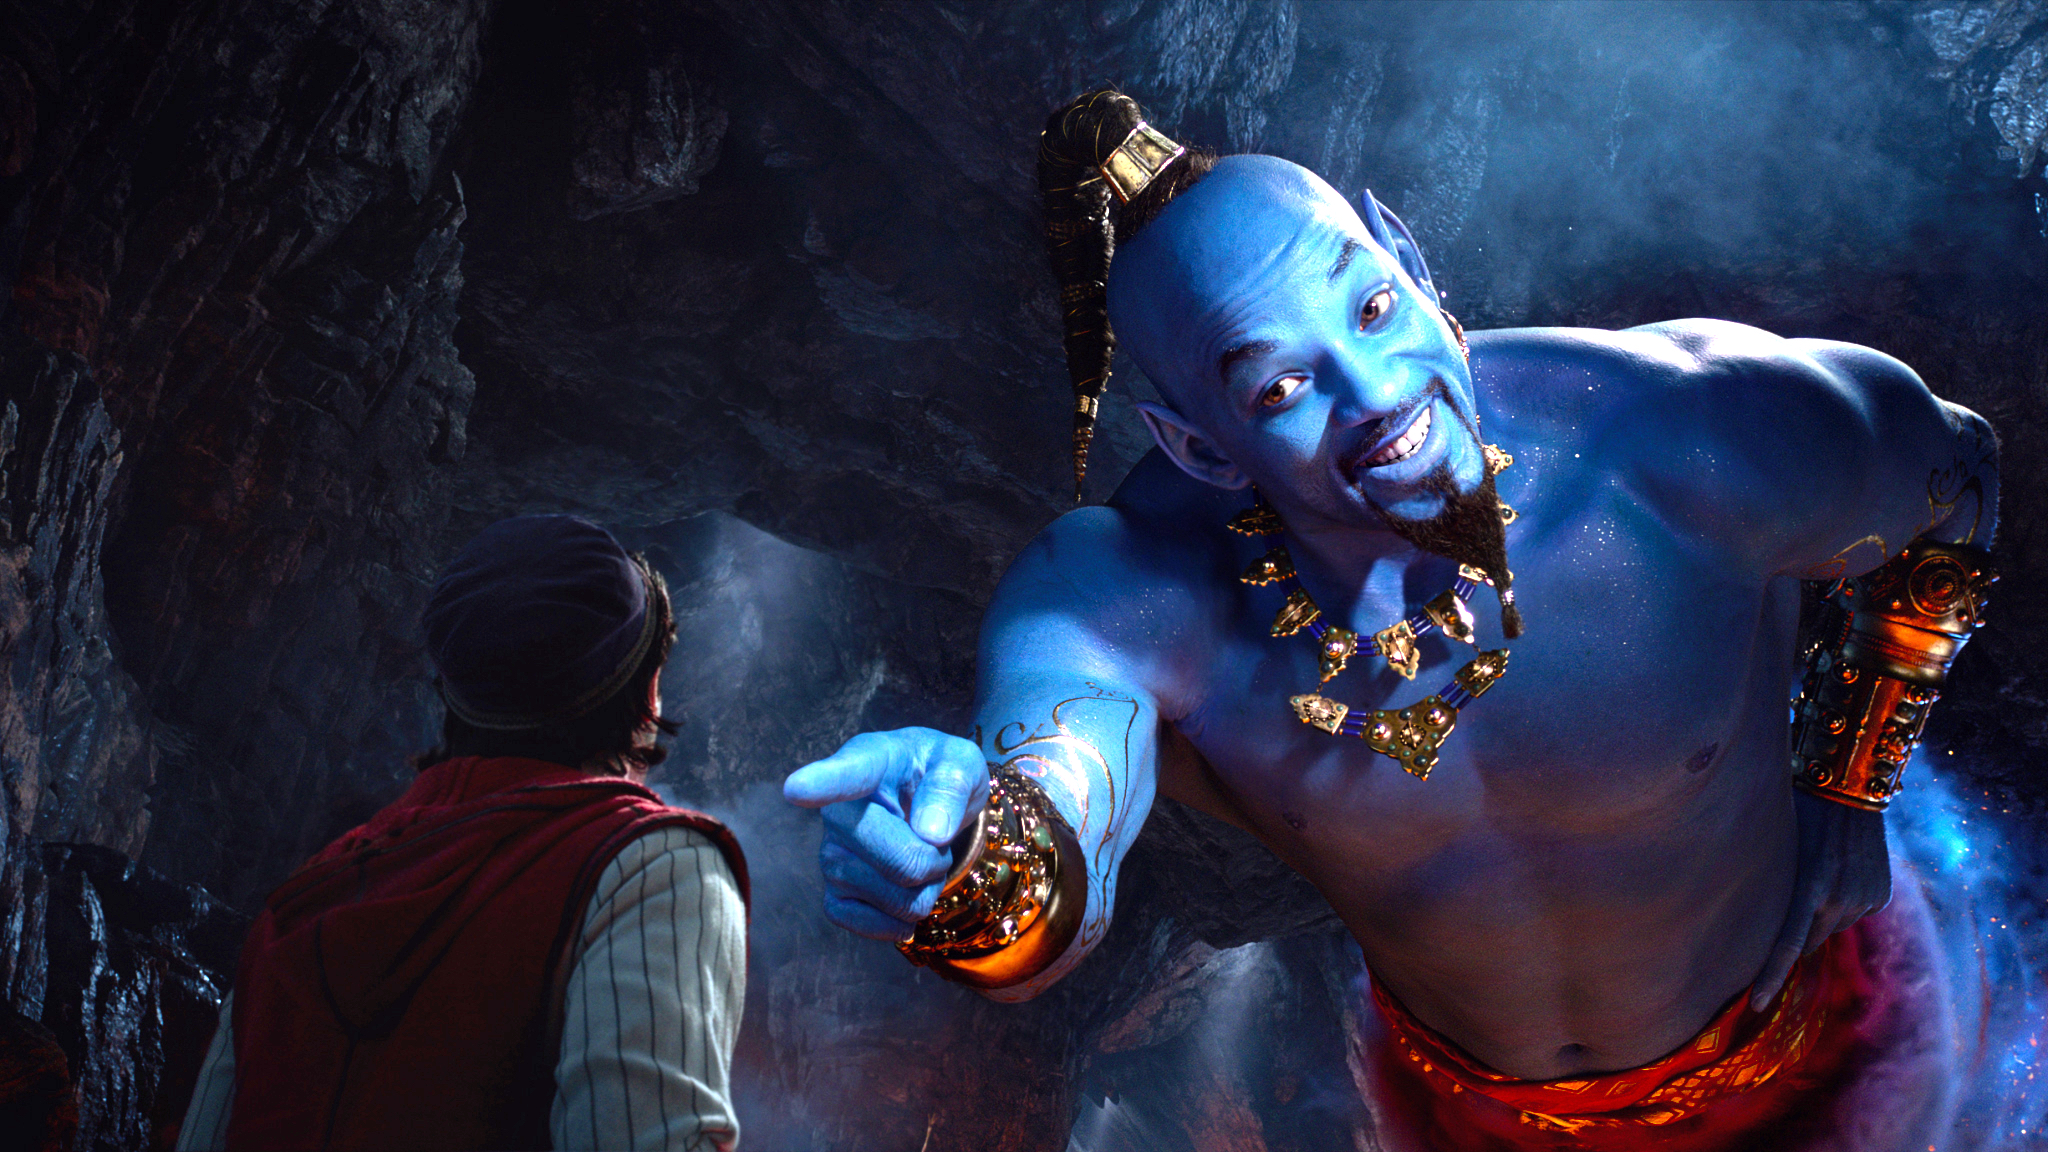 will-smith-as-the-genie-in-aladdin-2019.jpeg